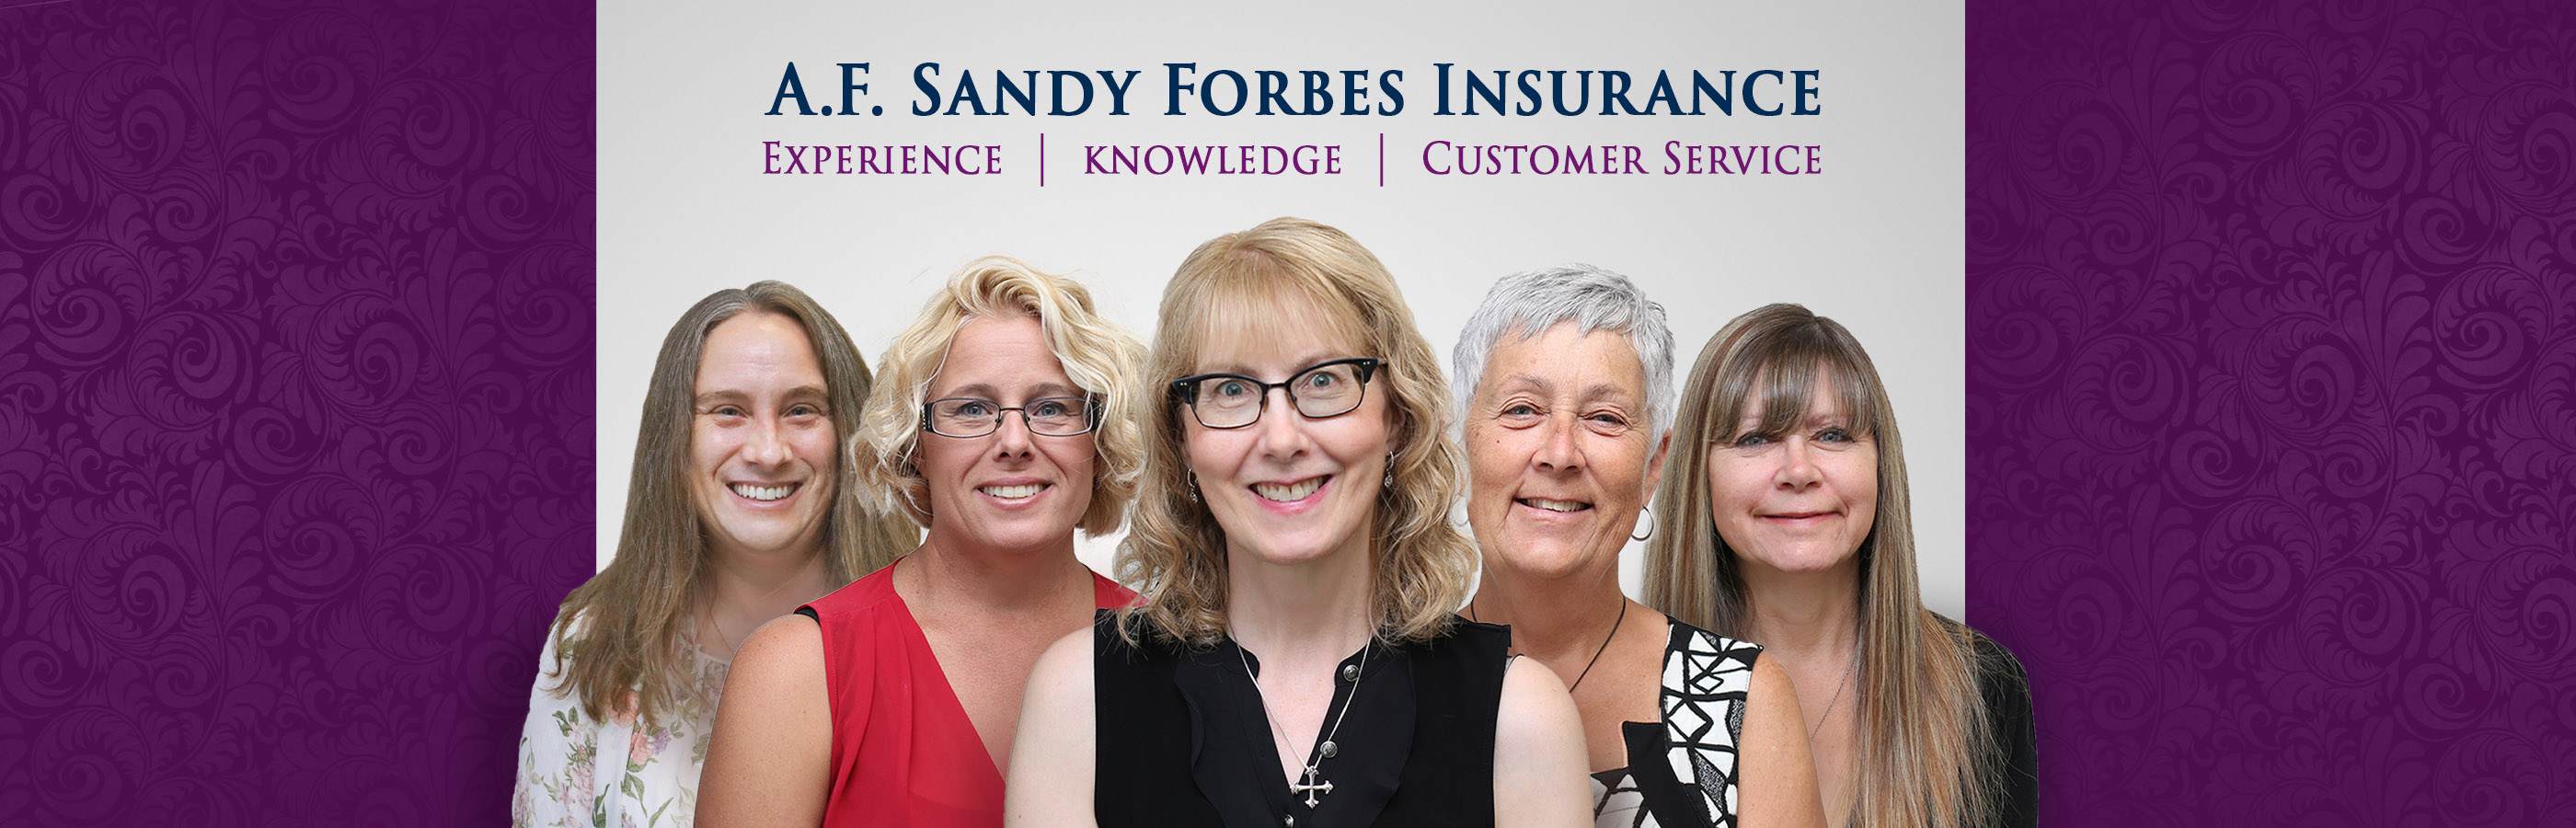 Forbes Insurance Team